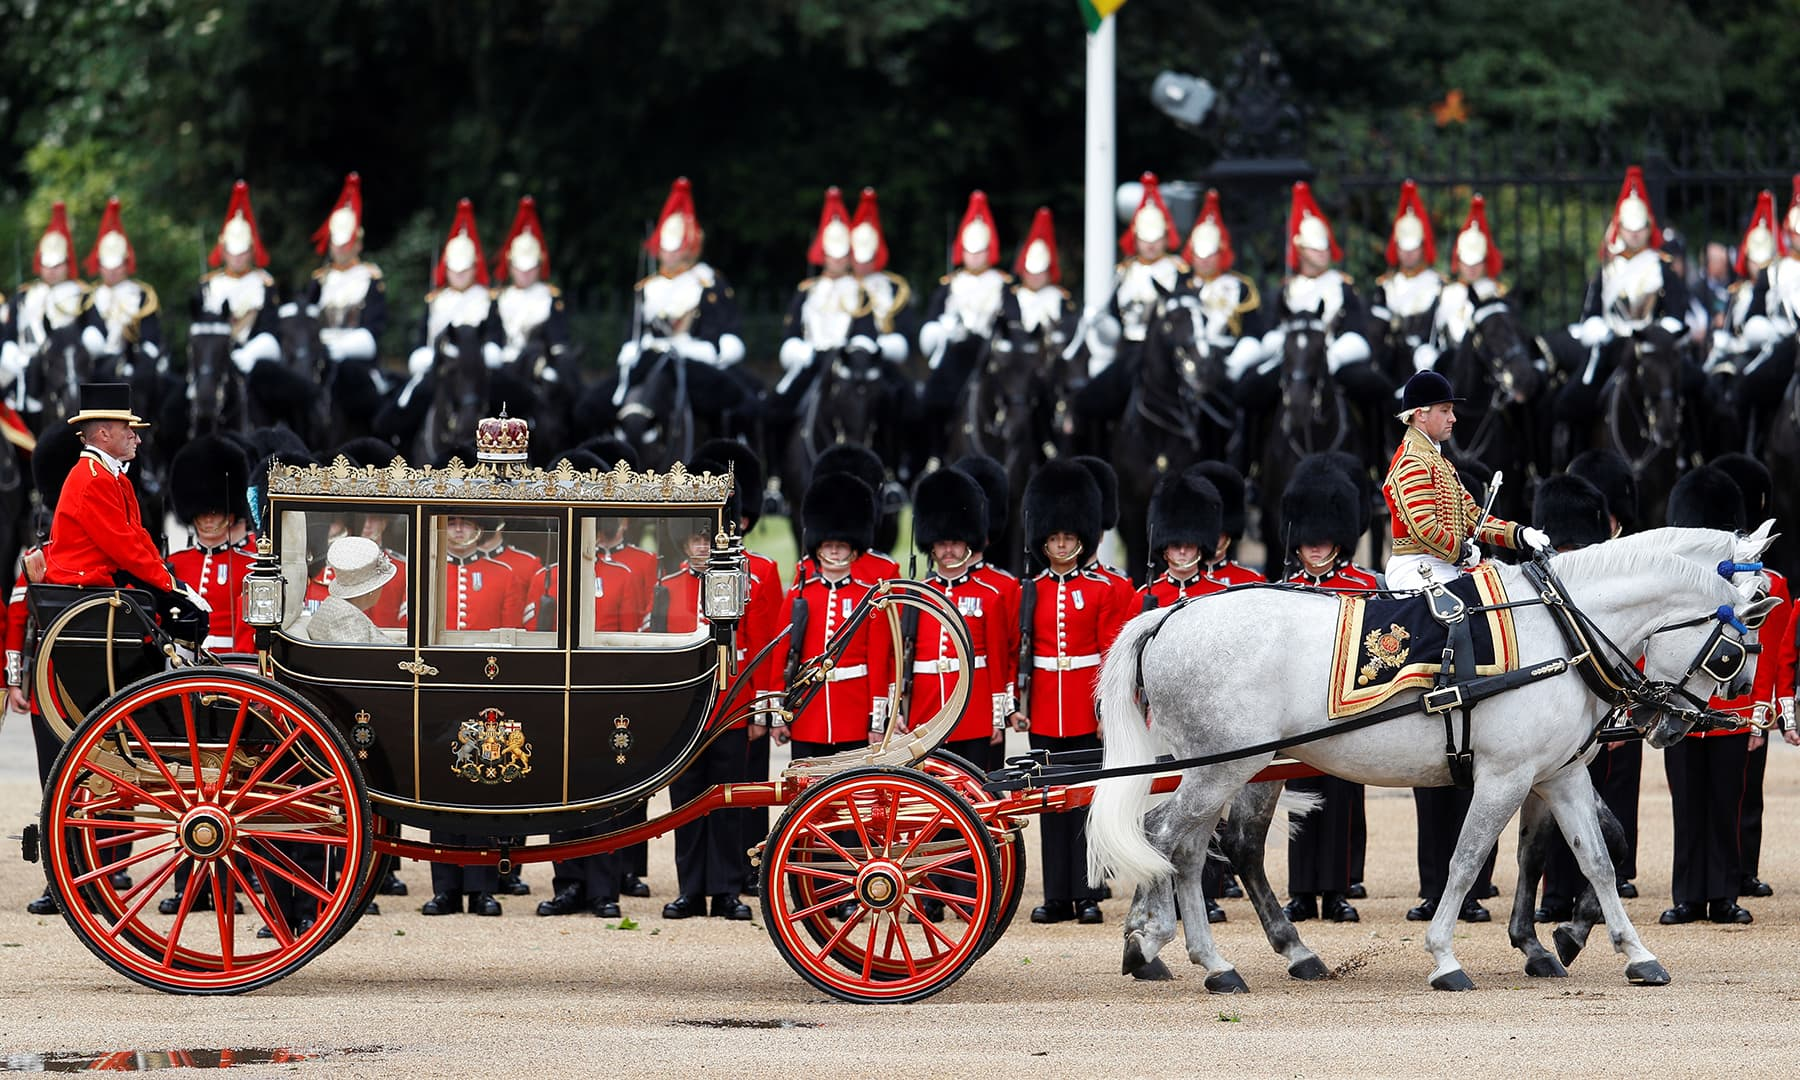 Britain's Queen Elizabeth pictured in her horse-drawn carriage as she participates in the Trooping the Colour parade in central London, Britain. — AFP